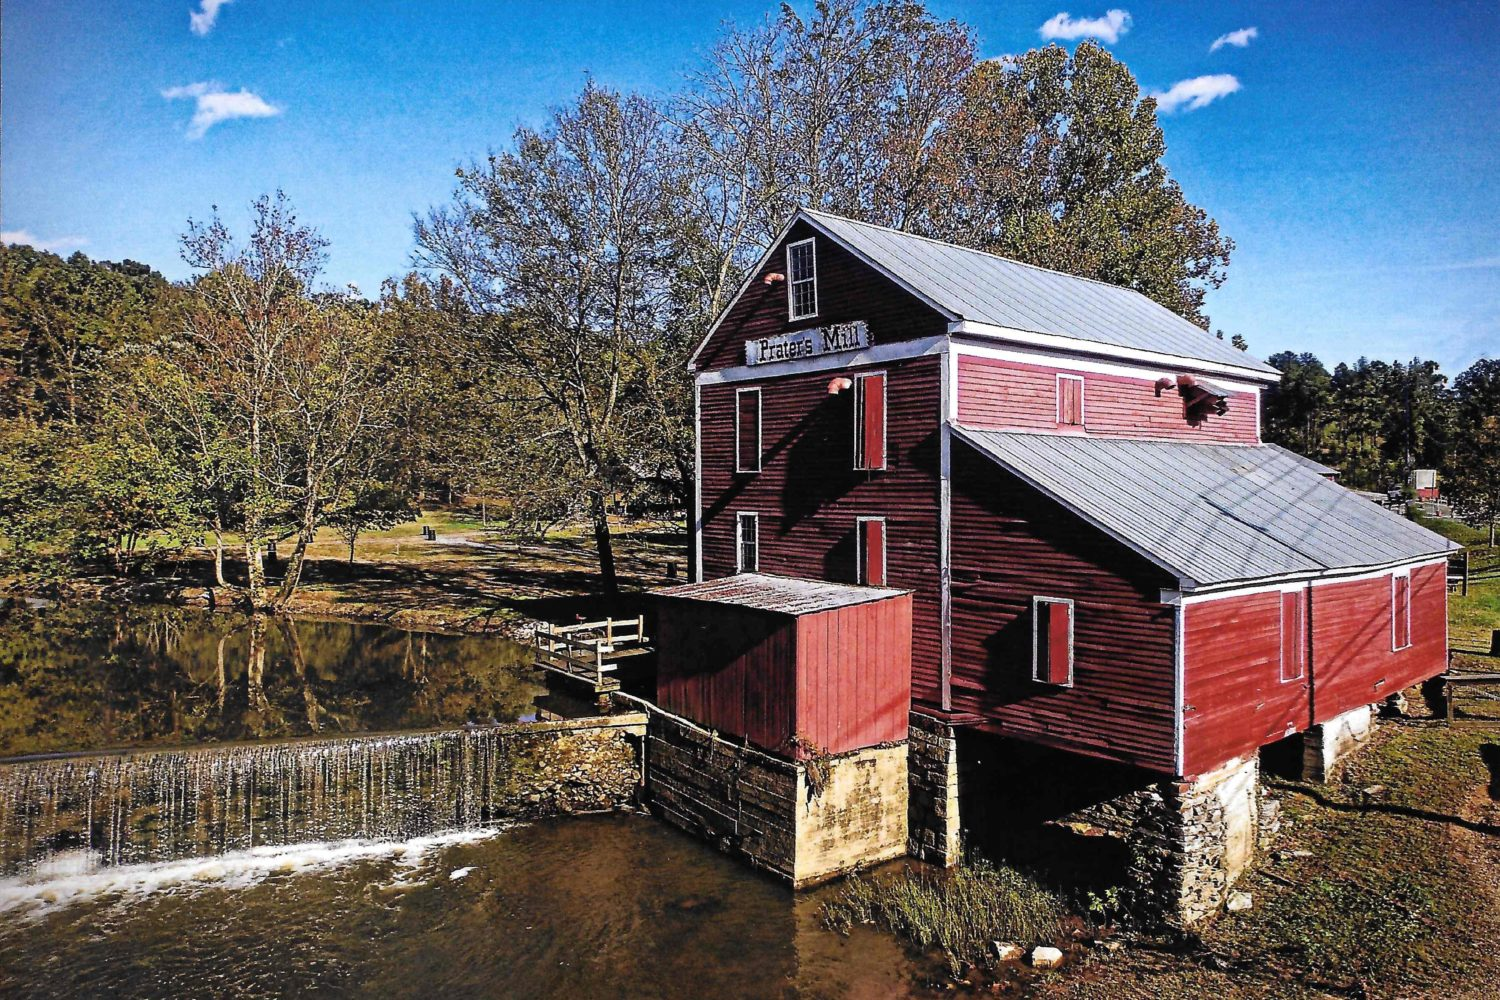 Prater's Mill cover photo